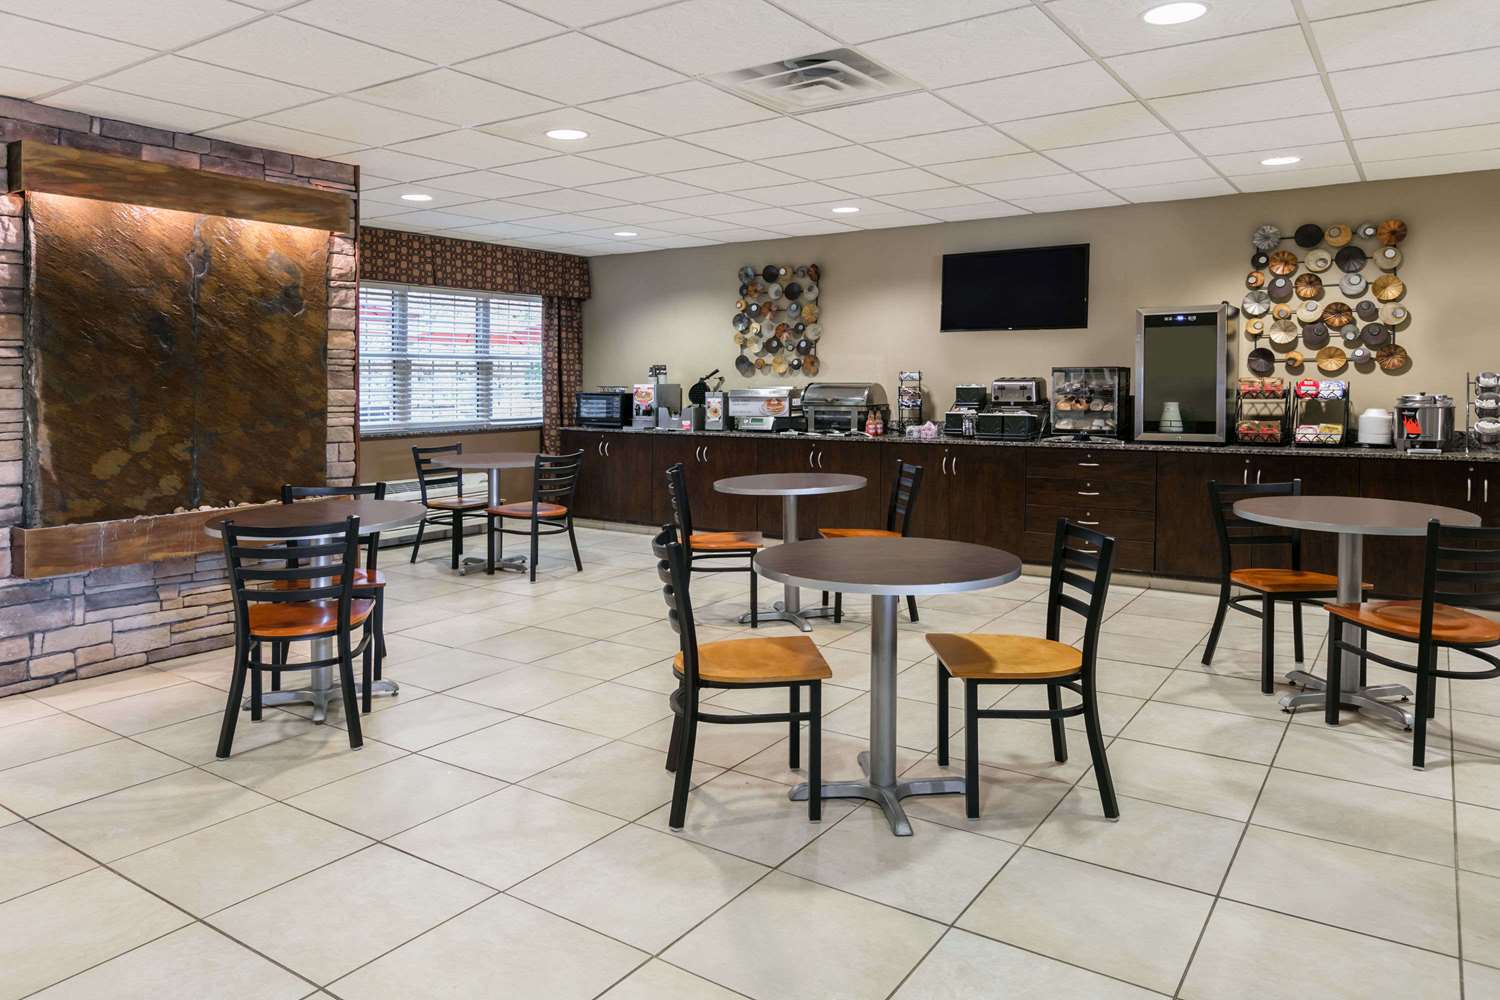 proam - Microtel Inn & Suites by Wyndham Steubenville